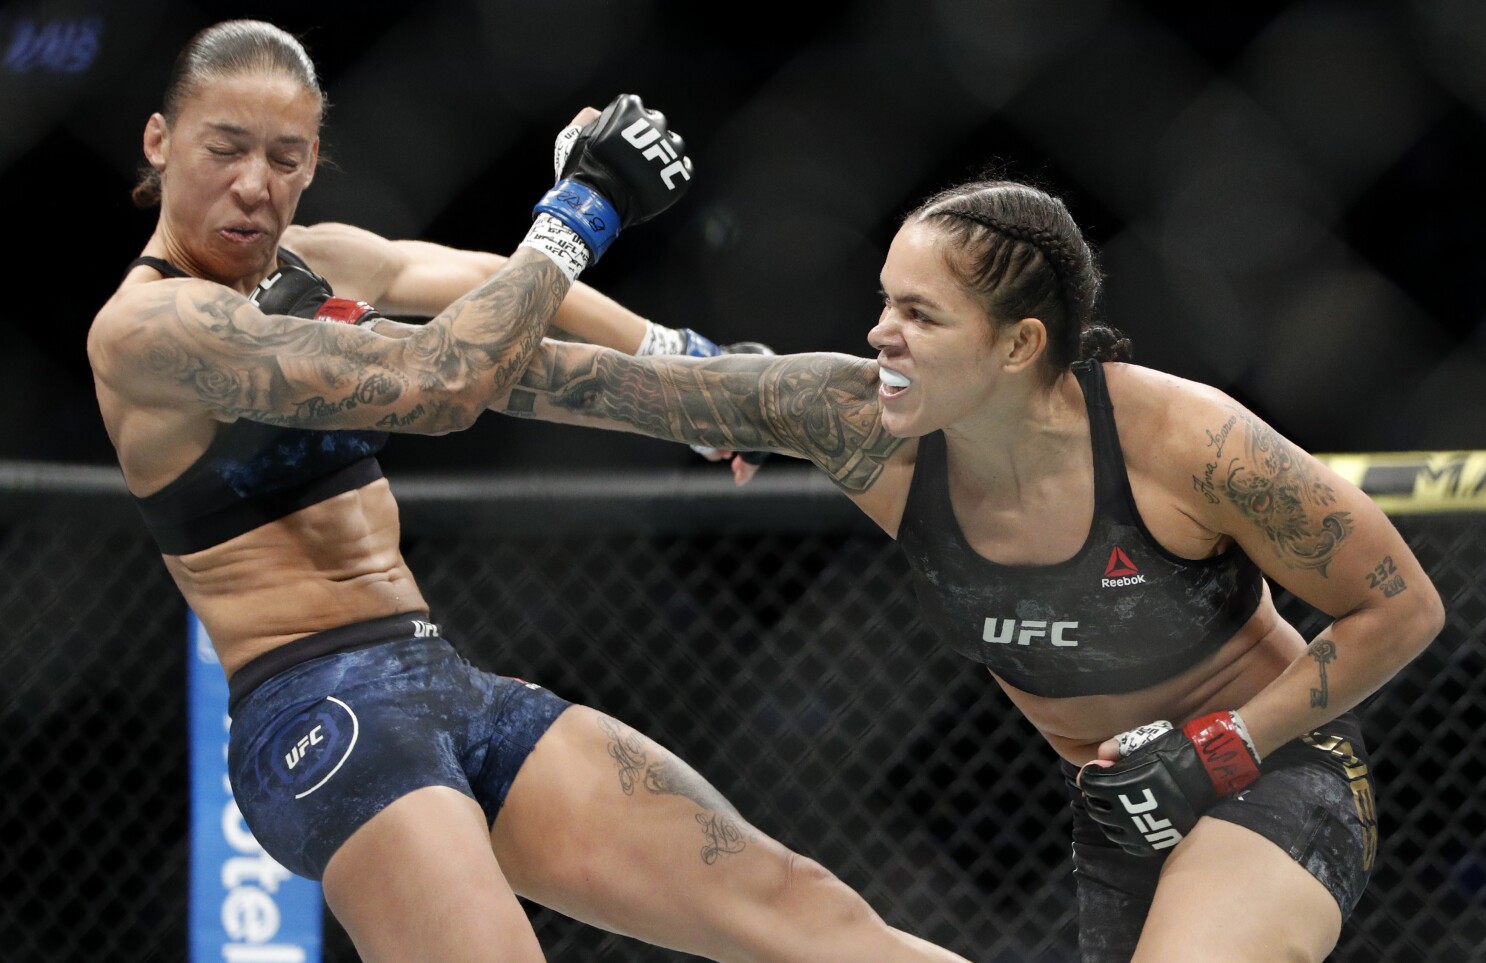 UFC 245: Amanda Nunes keeps title in record-setting win - Los ...